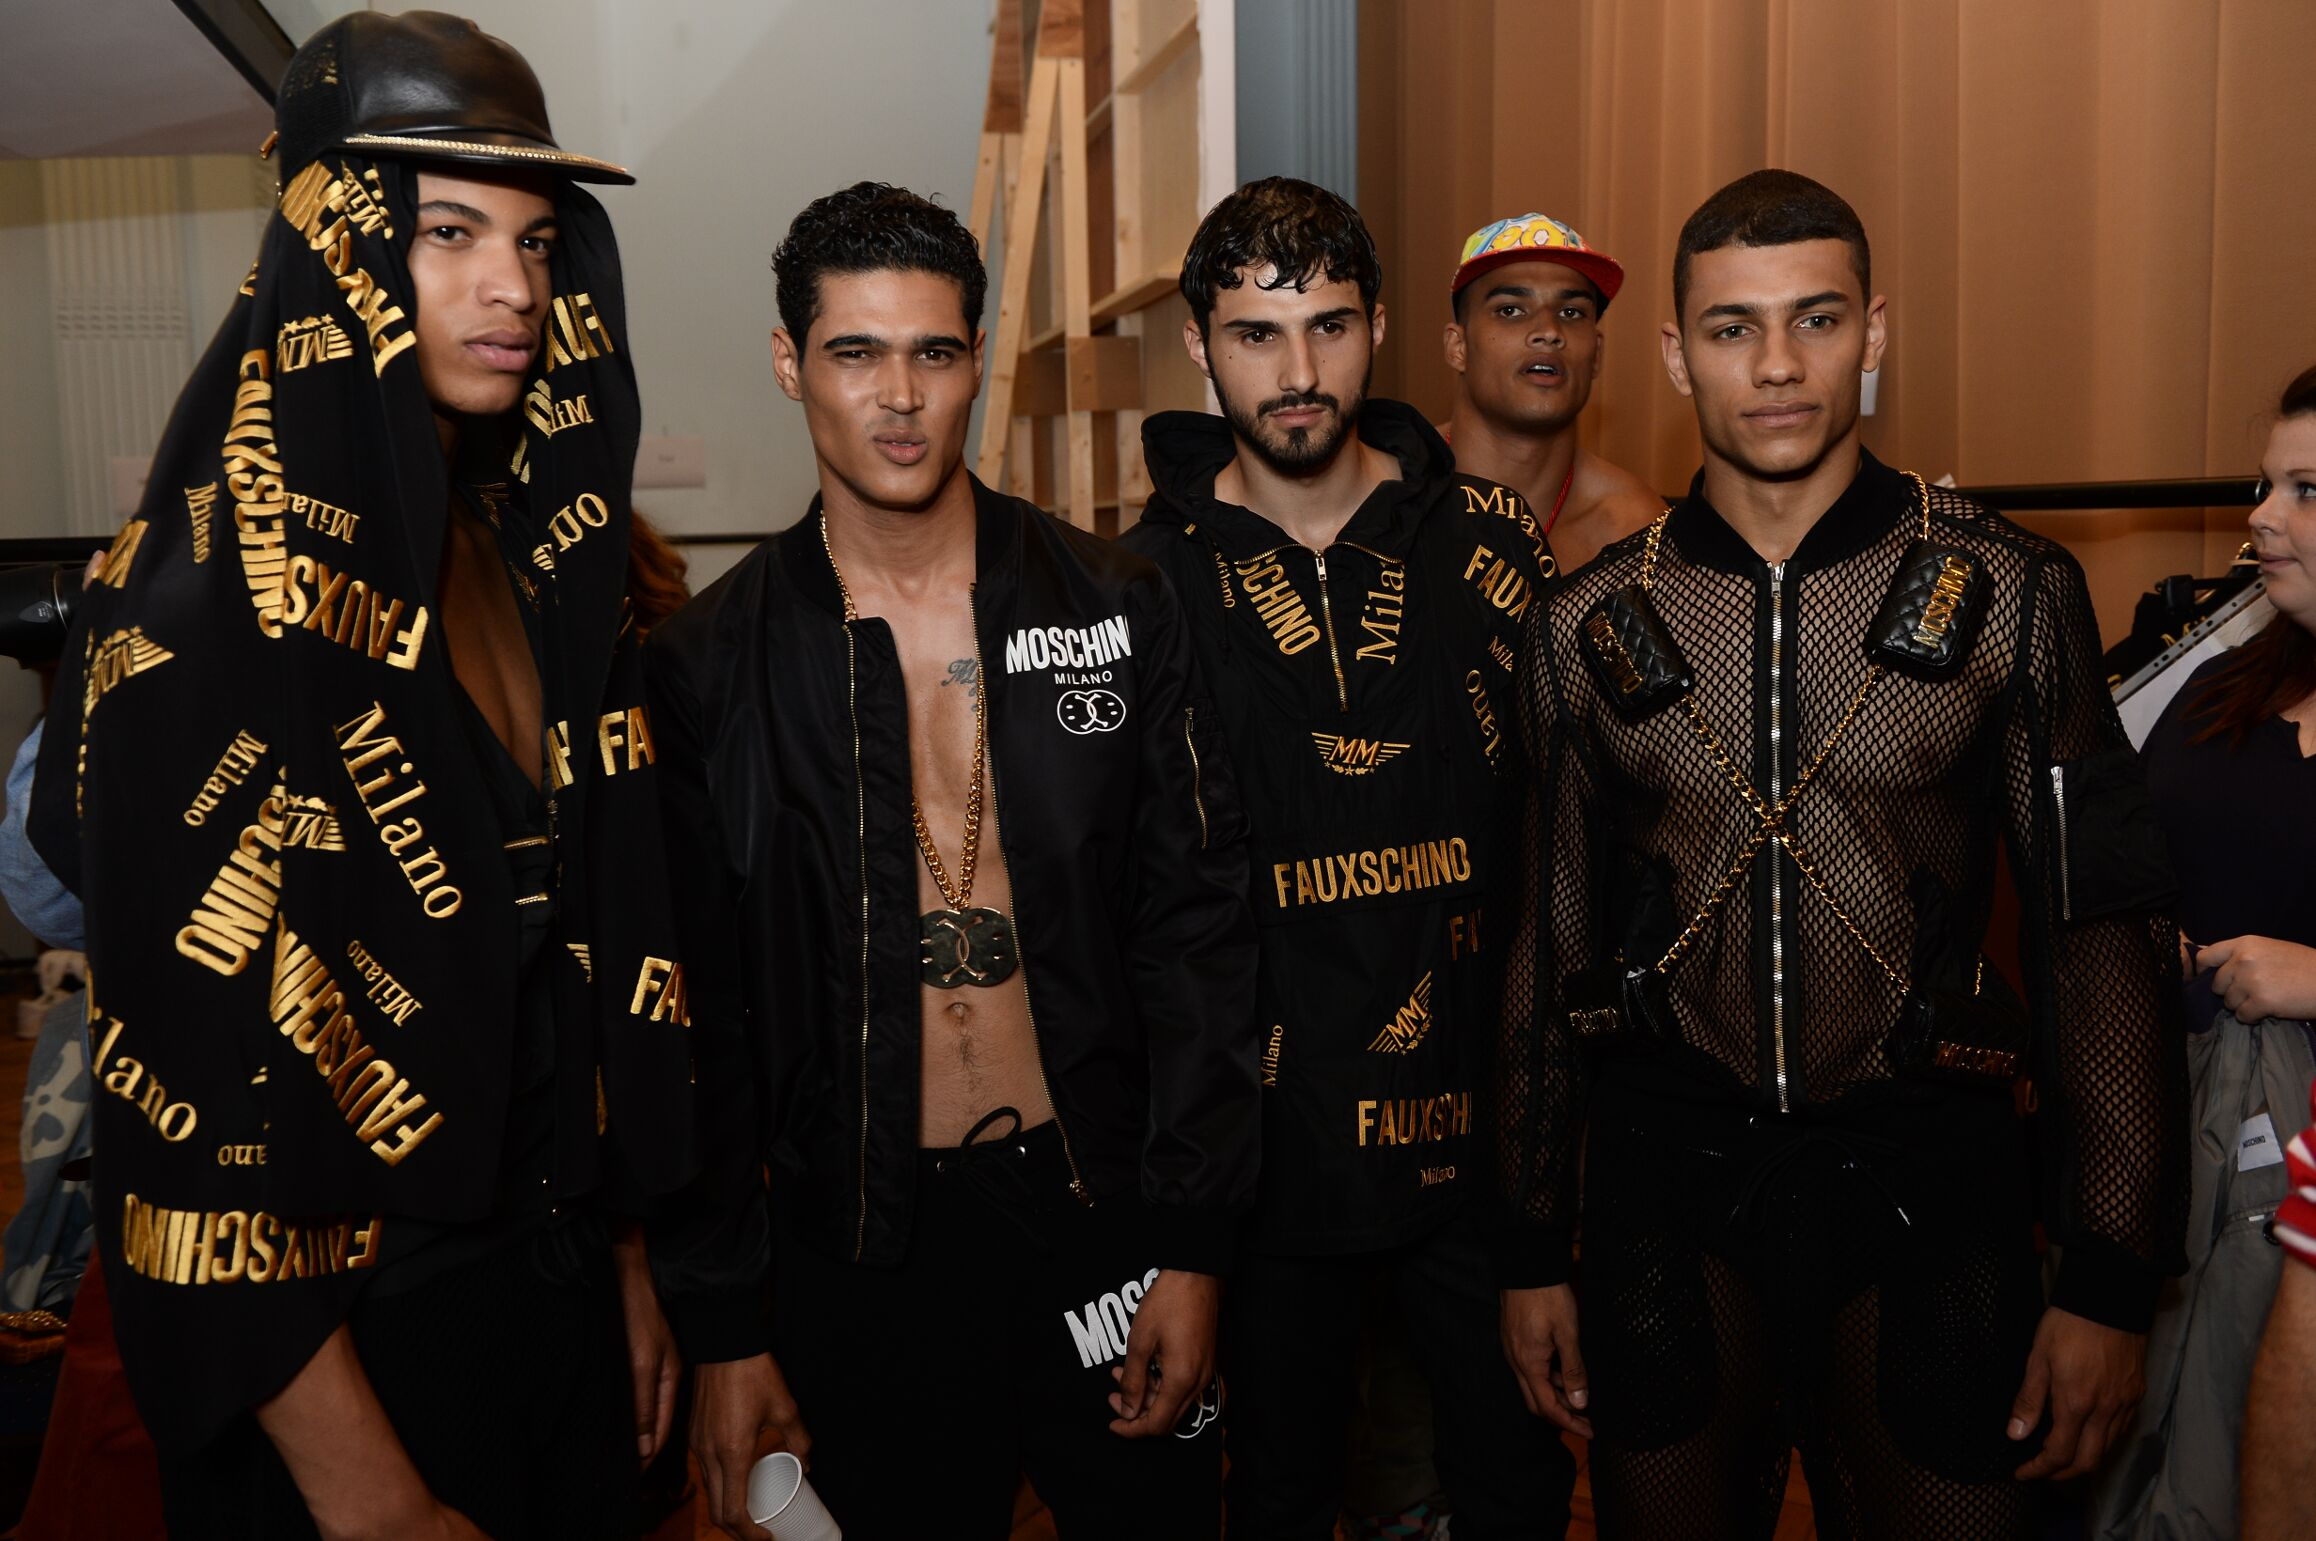 Backstage Moschino Men Models